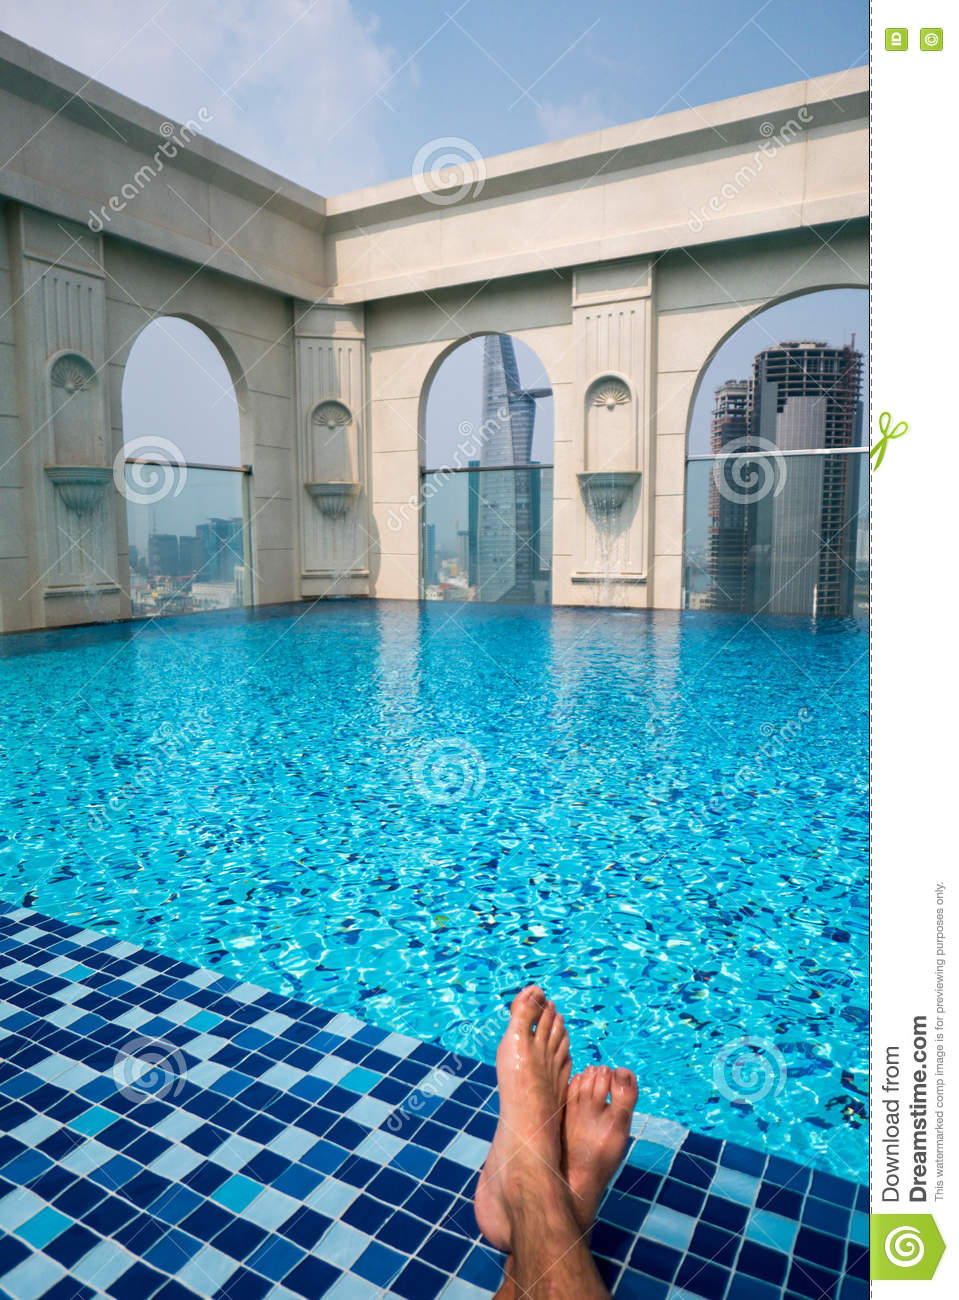 Pool On Top Of Building : Feet over the sparkling pool on top of building with